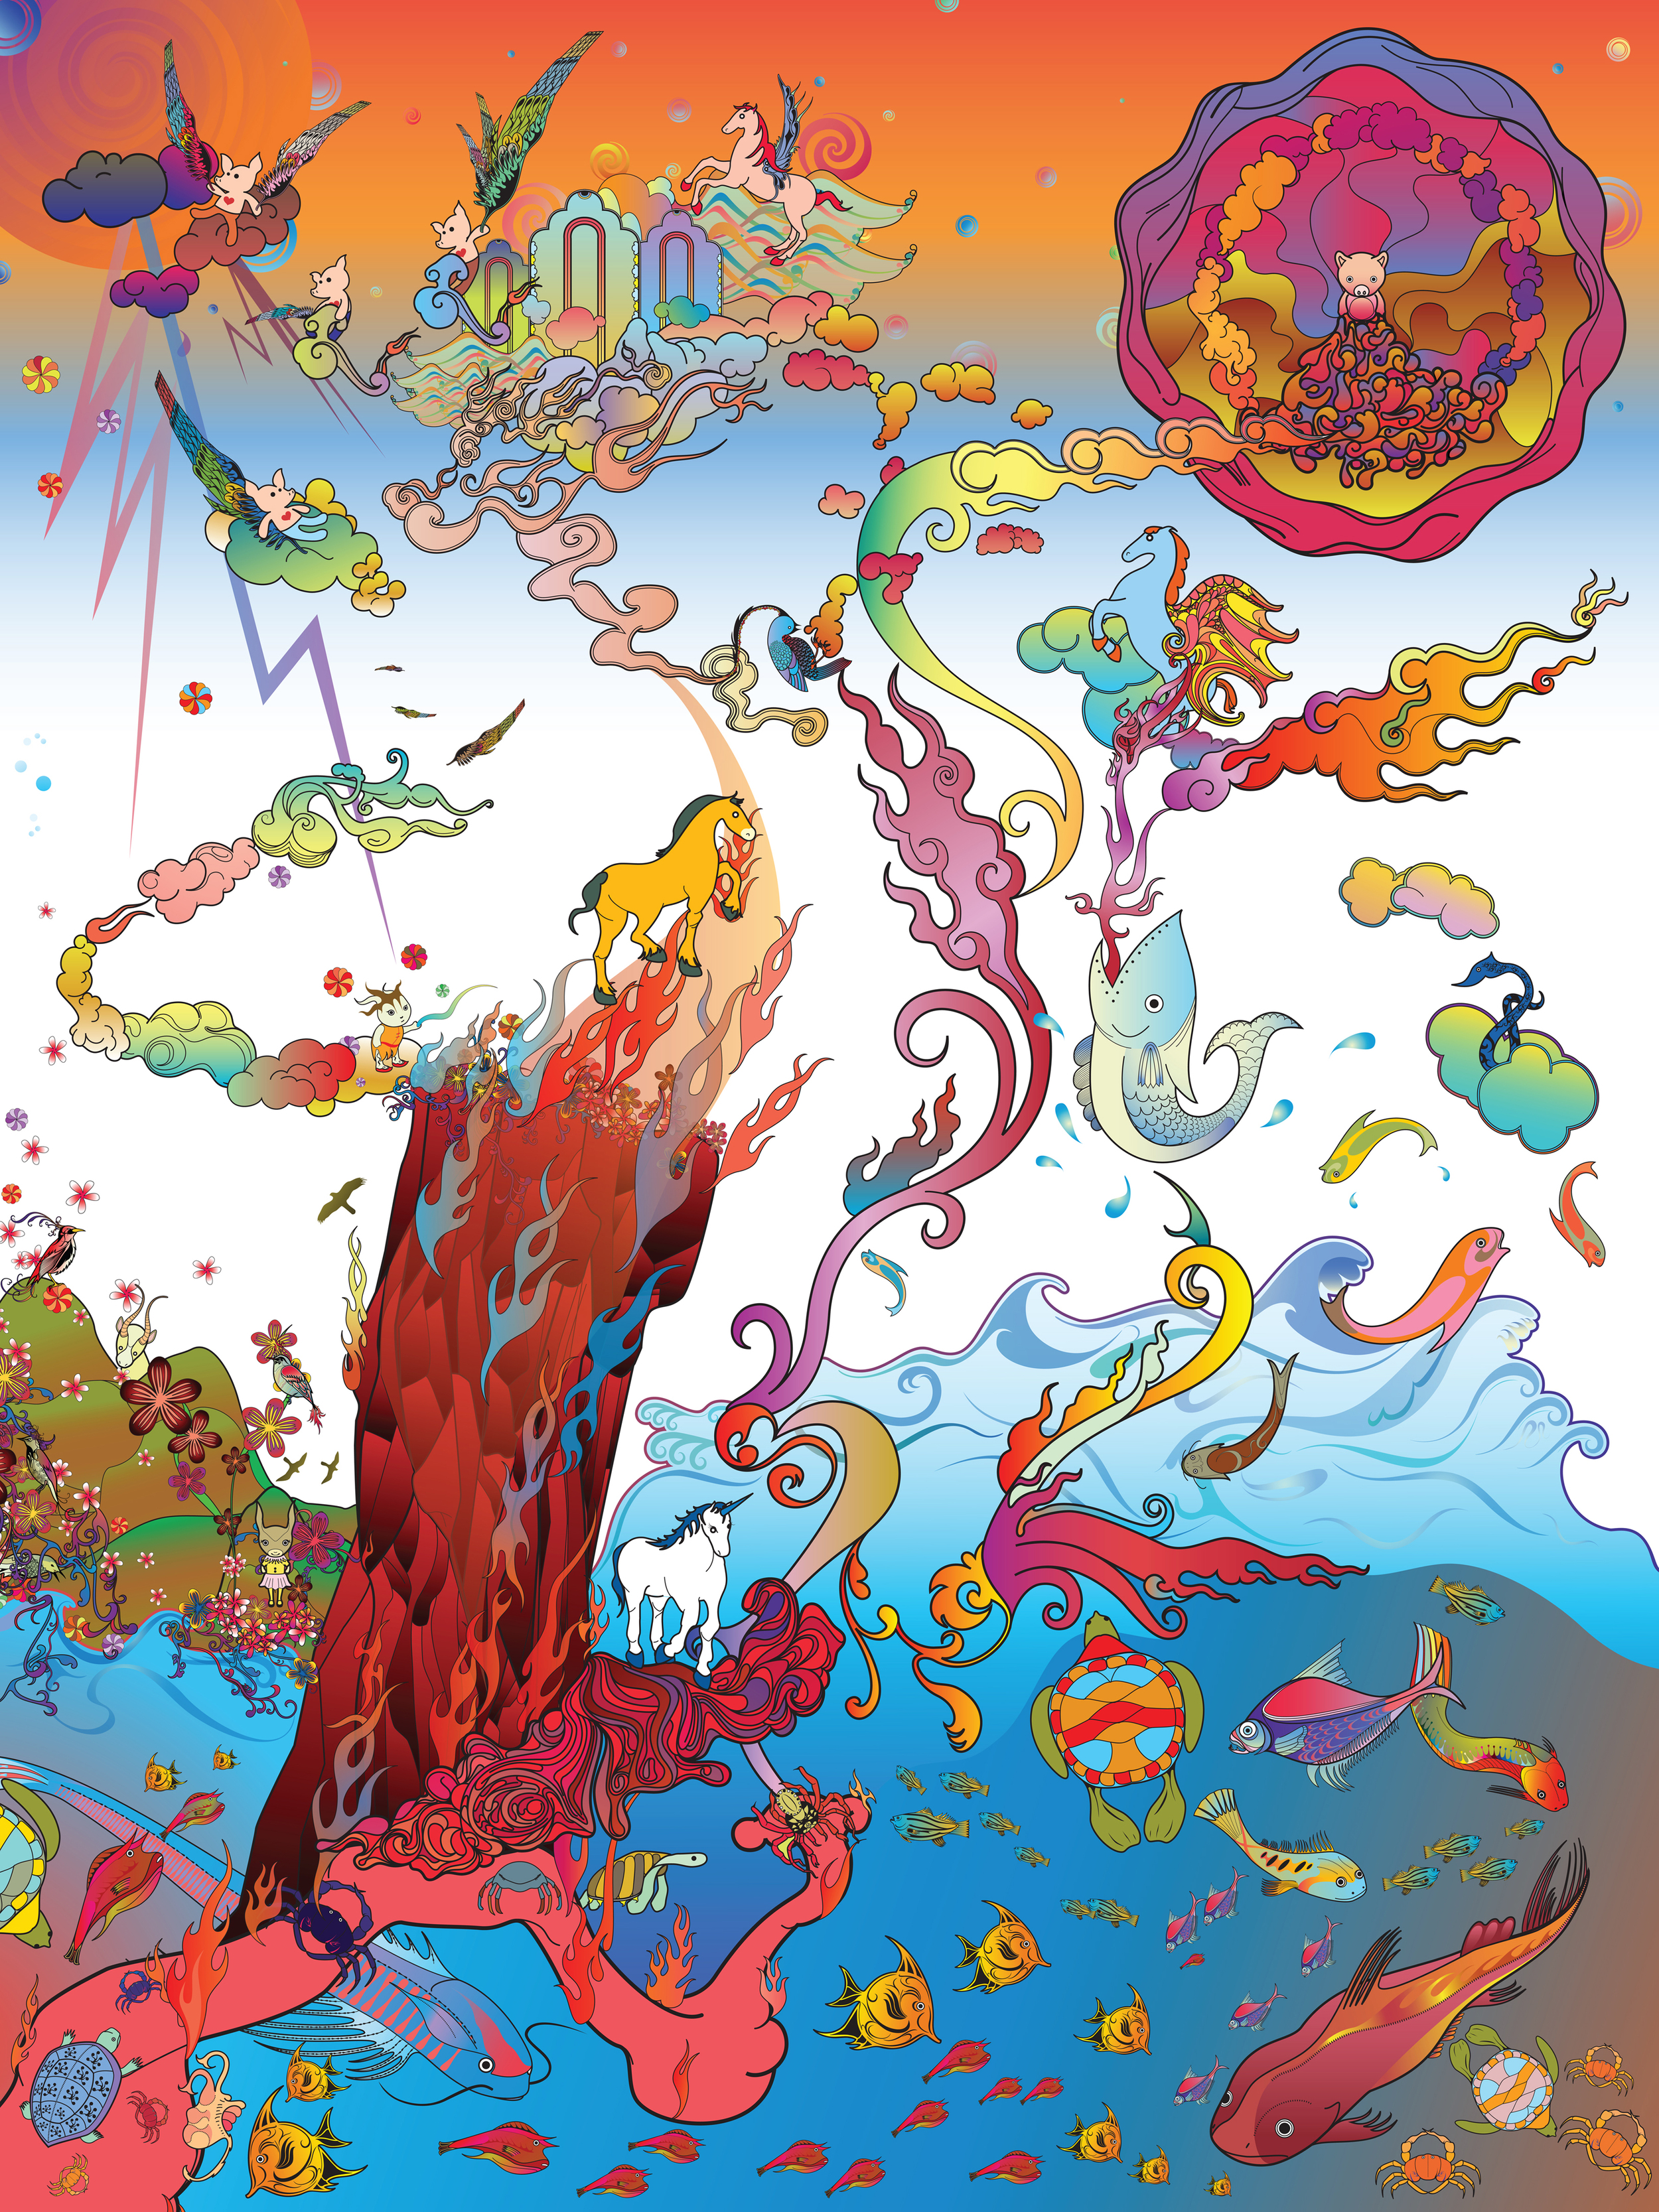 Heung-Heung Chin The Awakening of the Empyrean Dominion, 2006 C-print 40 x 30 inches  /  101.6 x 76.2 cm  /  HeC 1